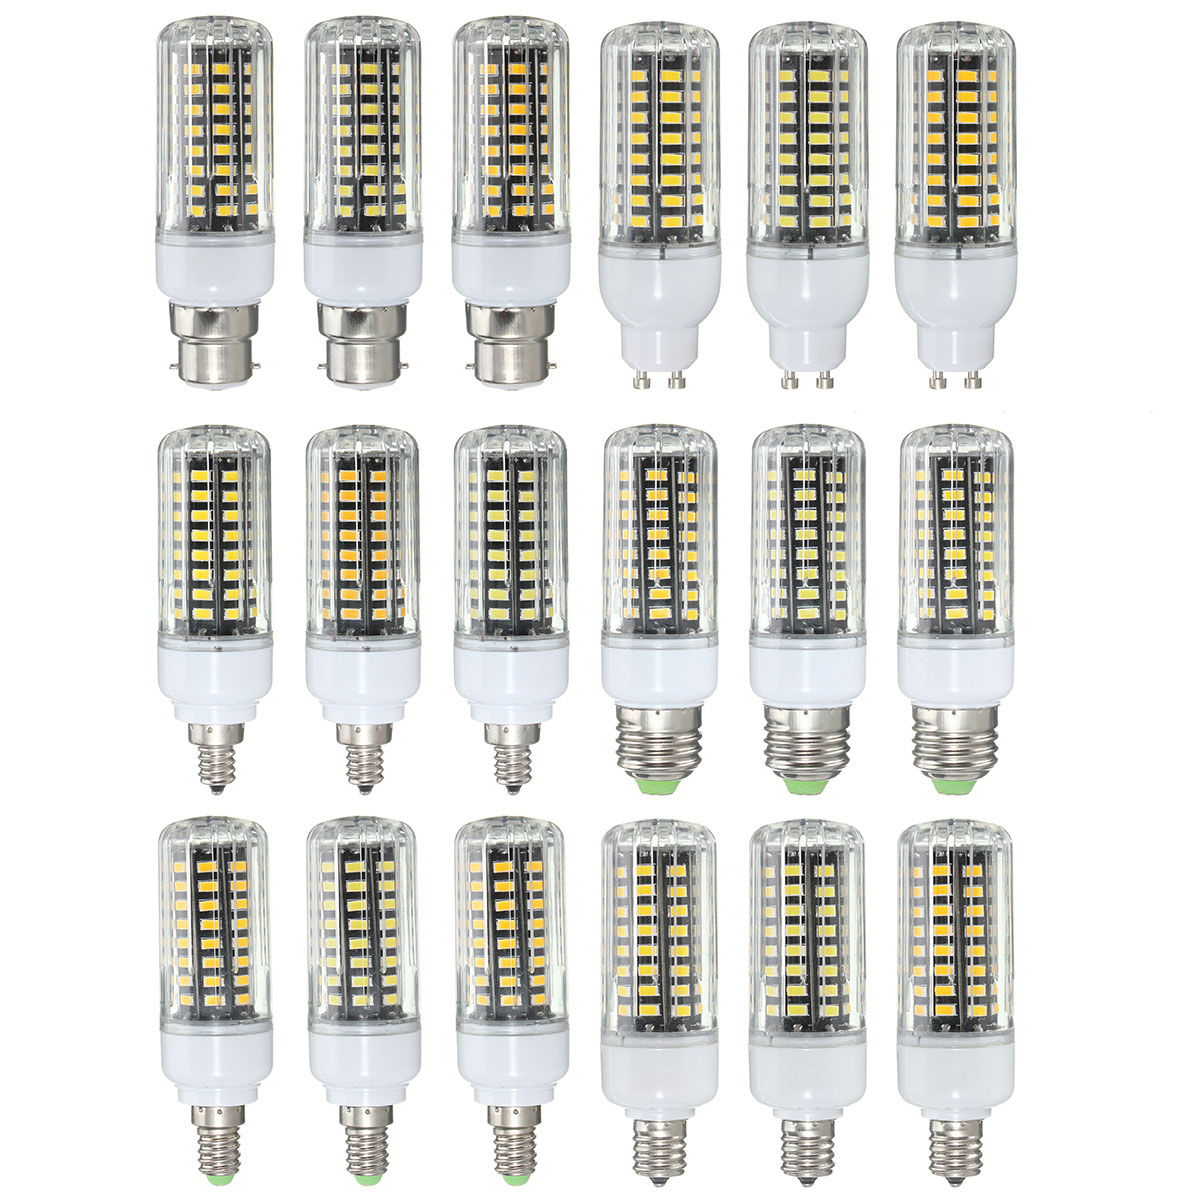 e27 e14 e12 e17 gu10 b22 led corn bulb 7w 72 smd 5736 led lamp ampoule led light ac85 265v. Black Bedroom Furniture Sets. Home Design Ideas